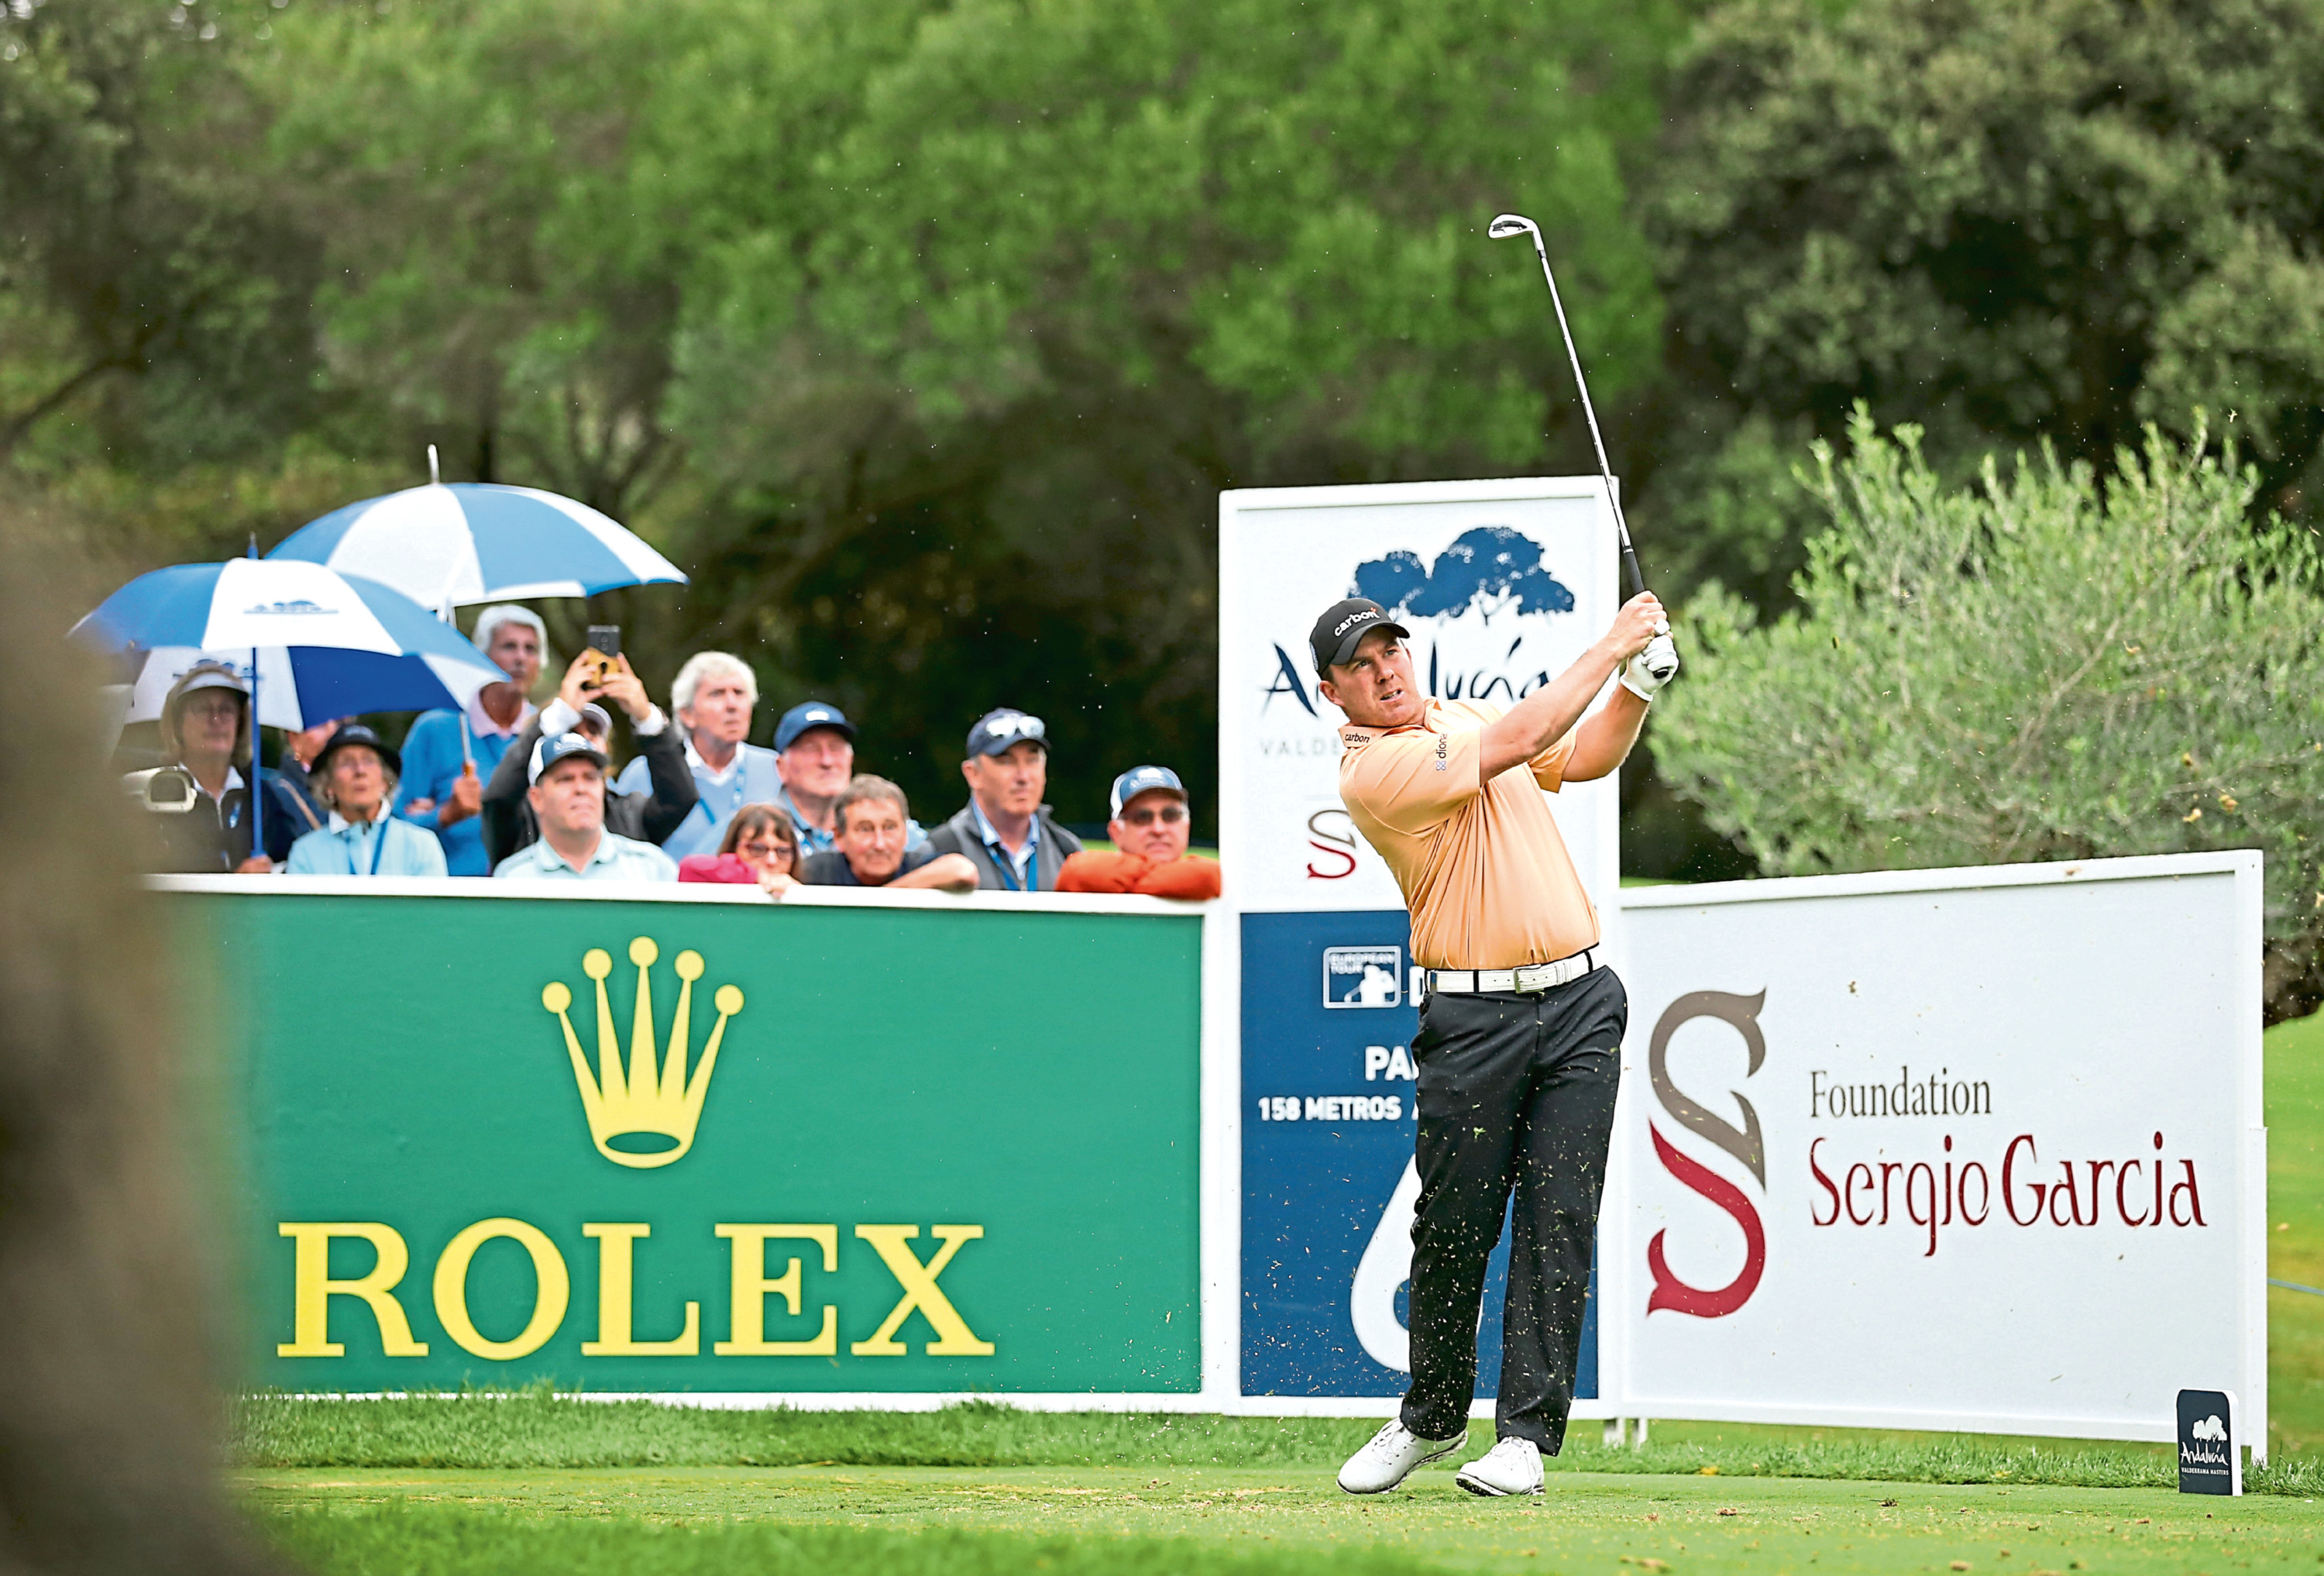 CADIZ, SPAIN - OCTOBER 20: Richie Ramsay of Scotland plays his tee shot on the 6th hole during the completion of the weather affected second round of the Andalucia Valderrama Masters at Real Club Valderrama on October 20, 2018 in Cadiz, Spain. (Photo by Luke Walker/Getty Images)